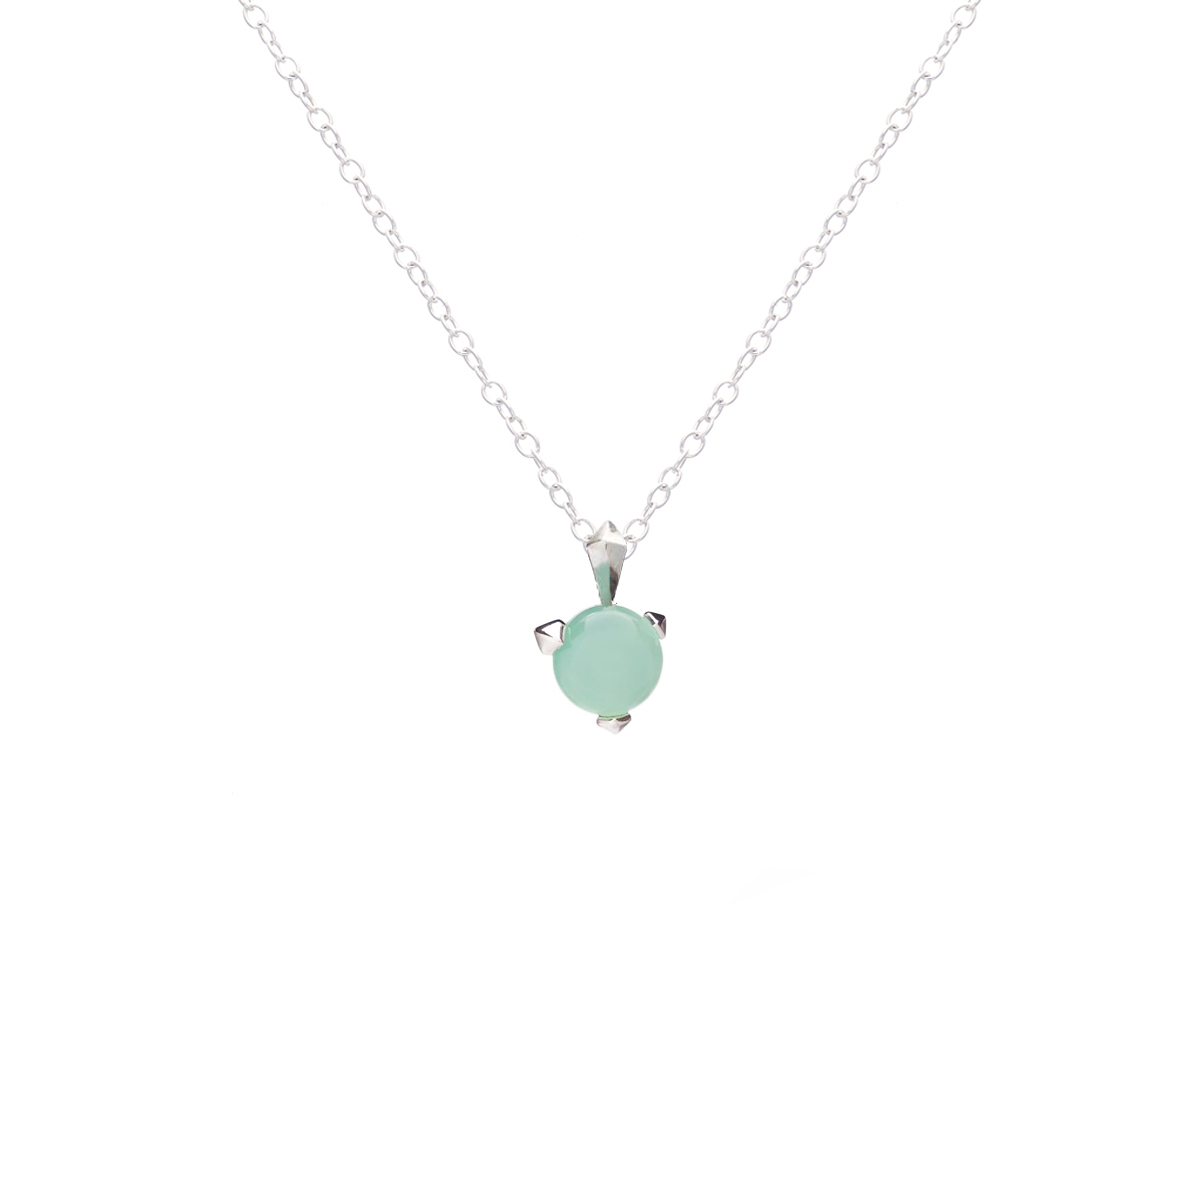 Bones necklace with mint chalcedony